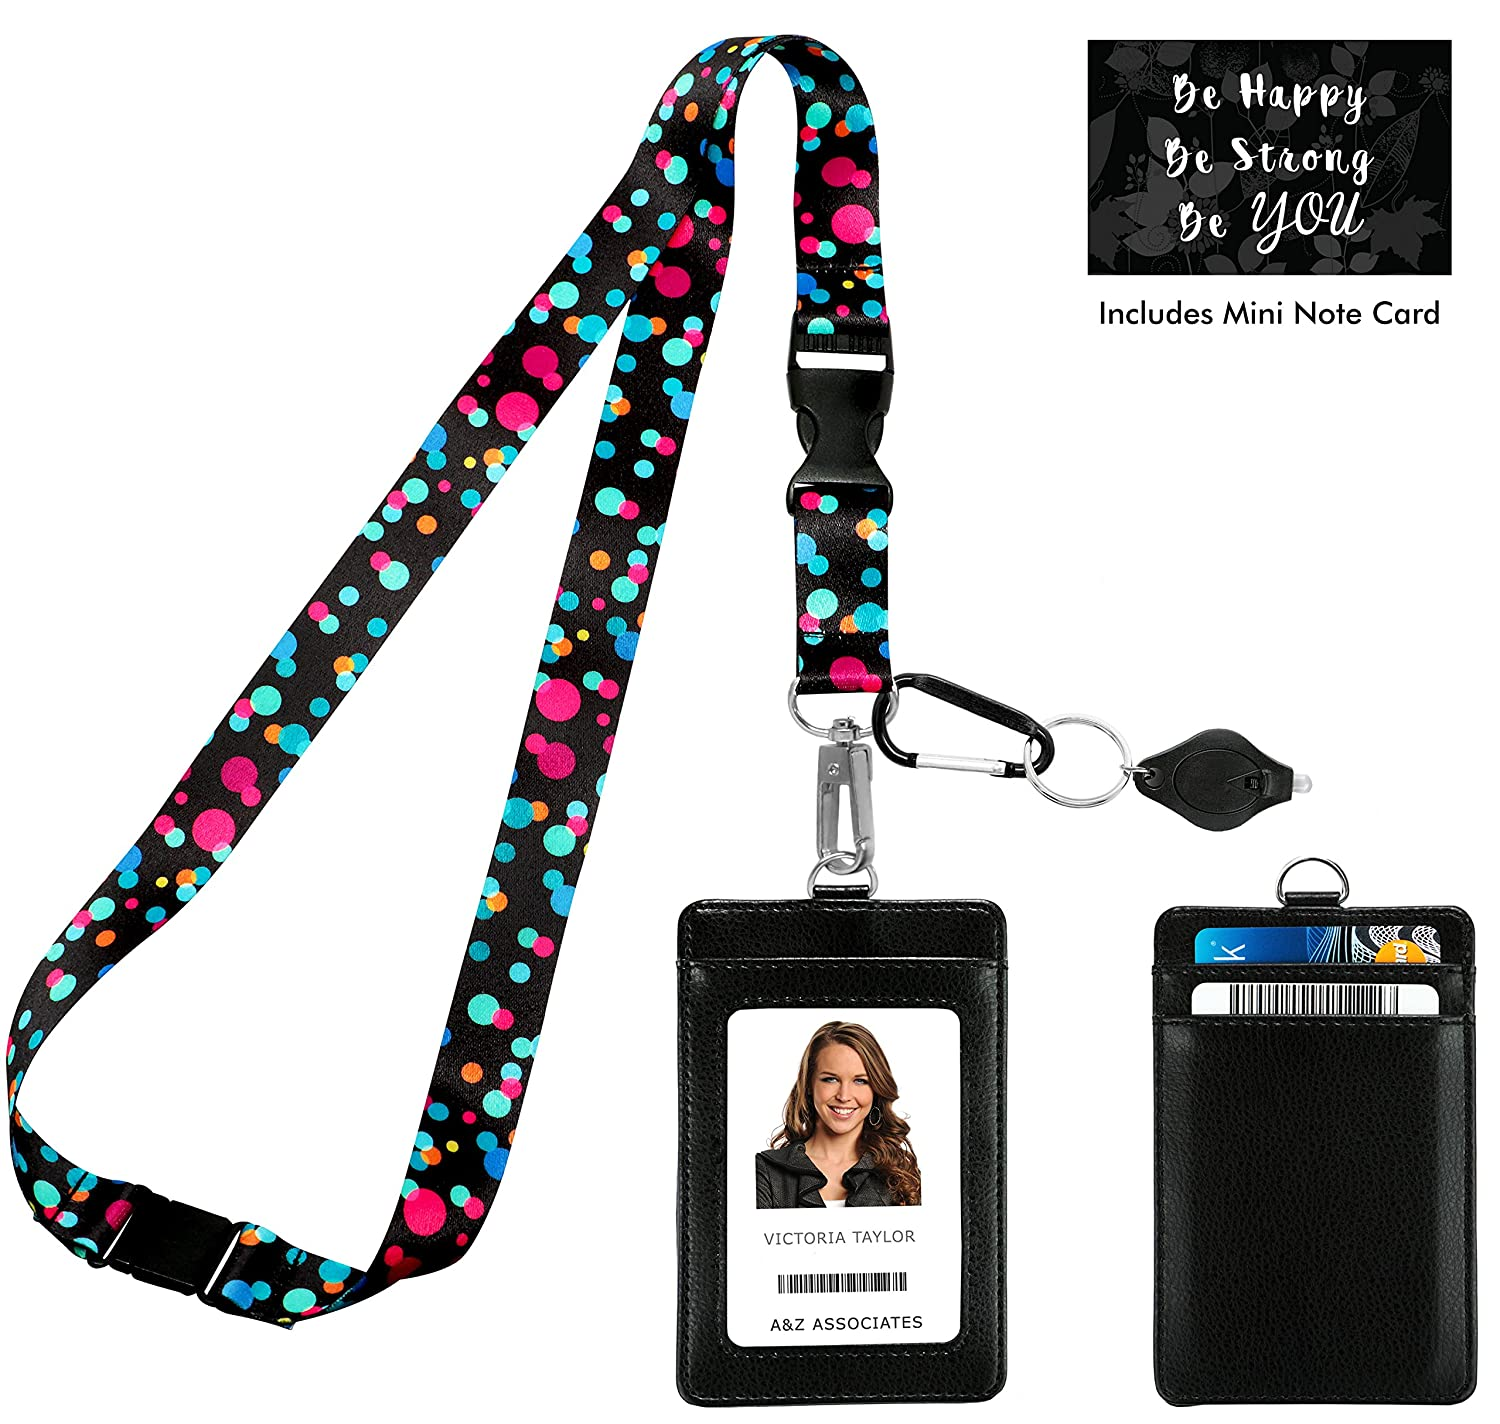 Bubbly Color Dots Print Lanyard with PU Leather ID Badge Holder Wallet with 2 Card Pockets, Safety Breakaway Clip, Note Card. Gift of Carabiner Keychain Flashlight. Lanyard for Cruise or Work One In A Millionaire